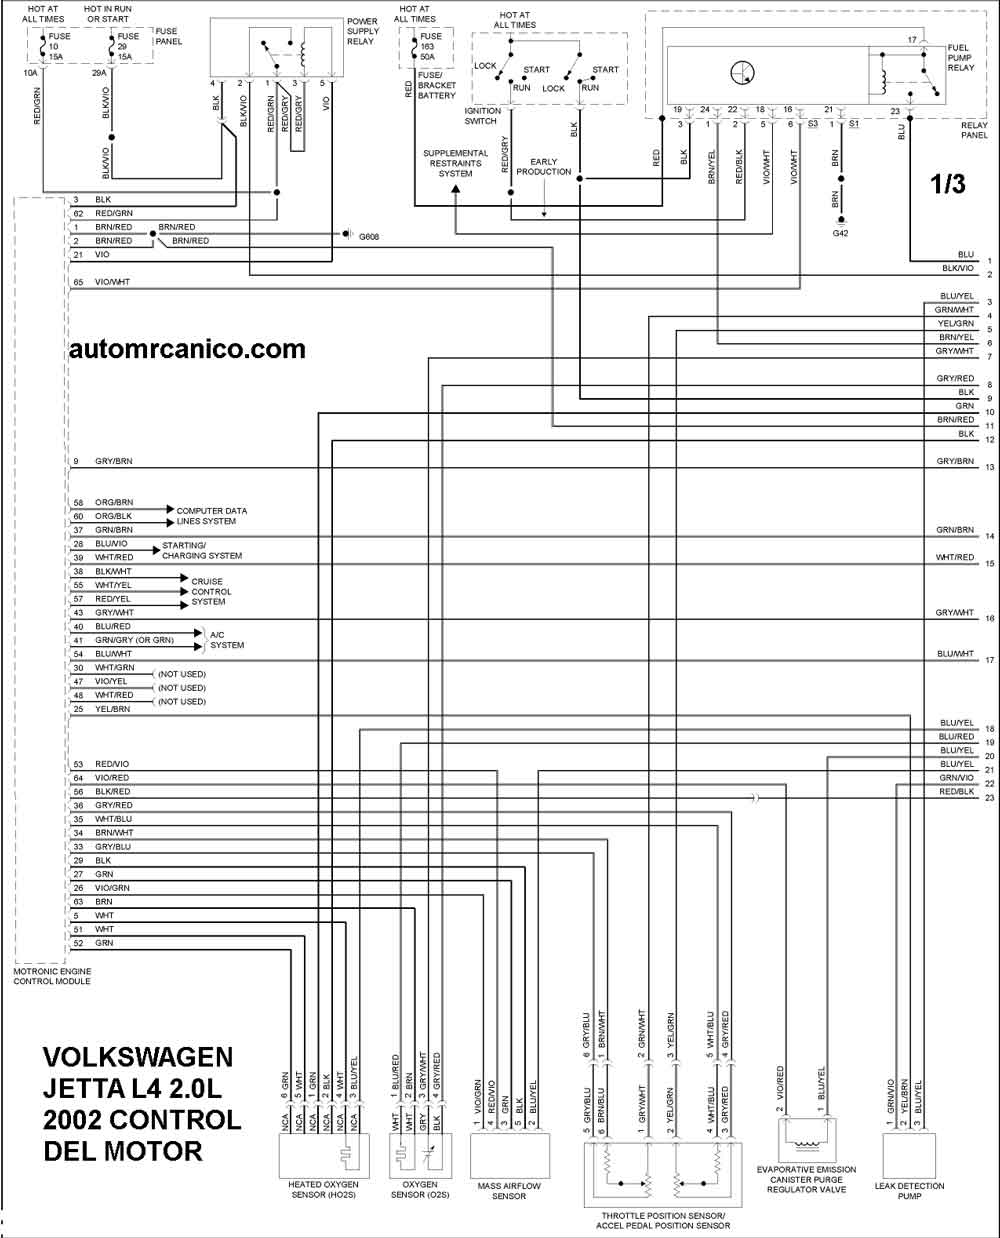 Diagrama Electrico Vw Derby 2002 Volkswagen Car